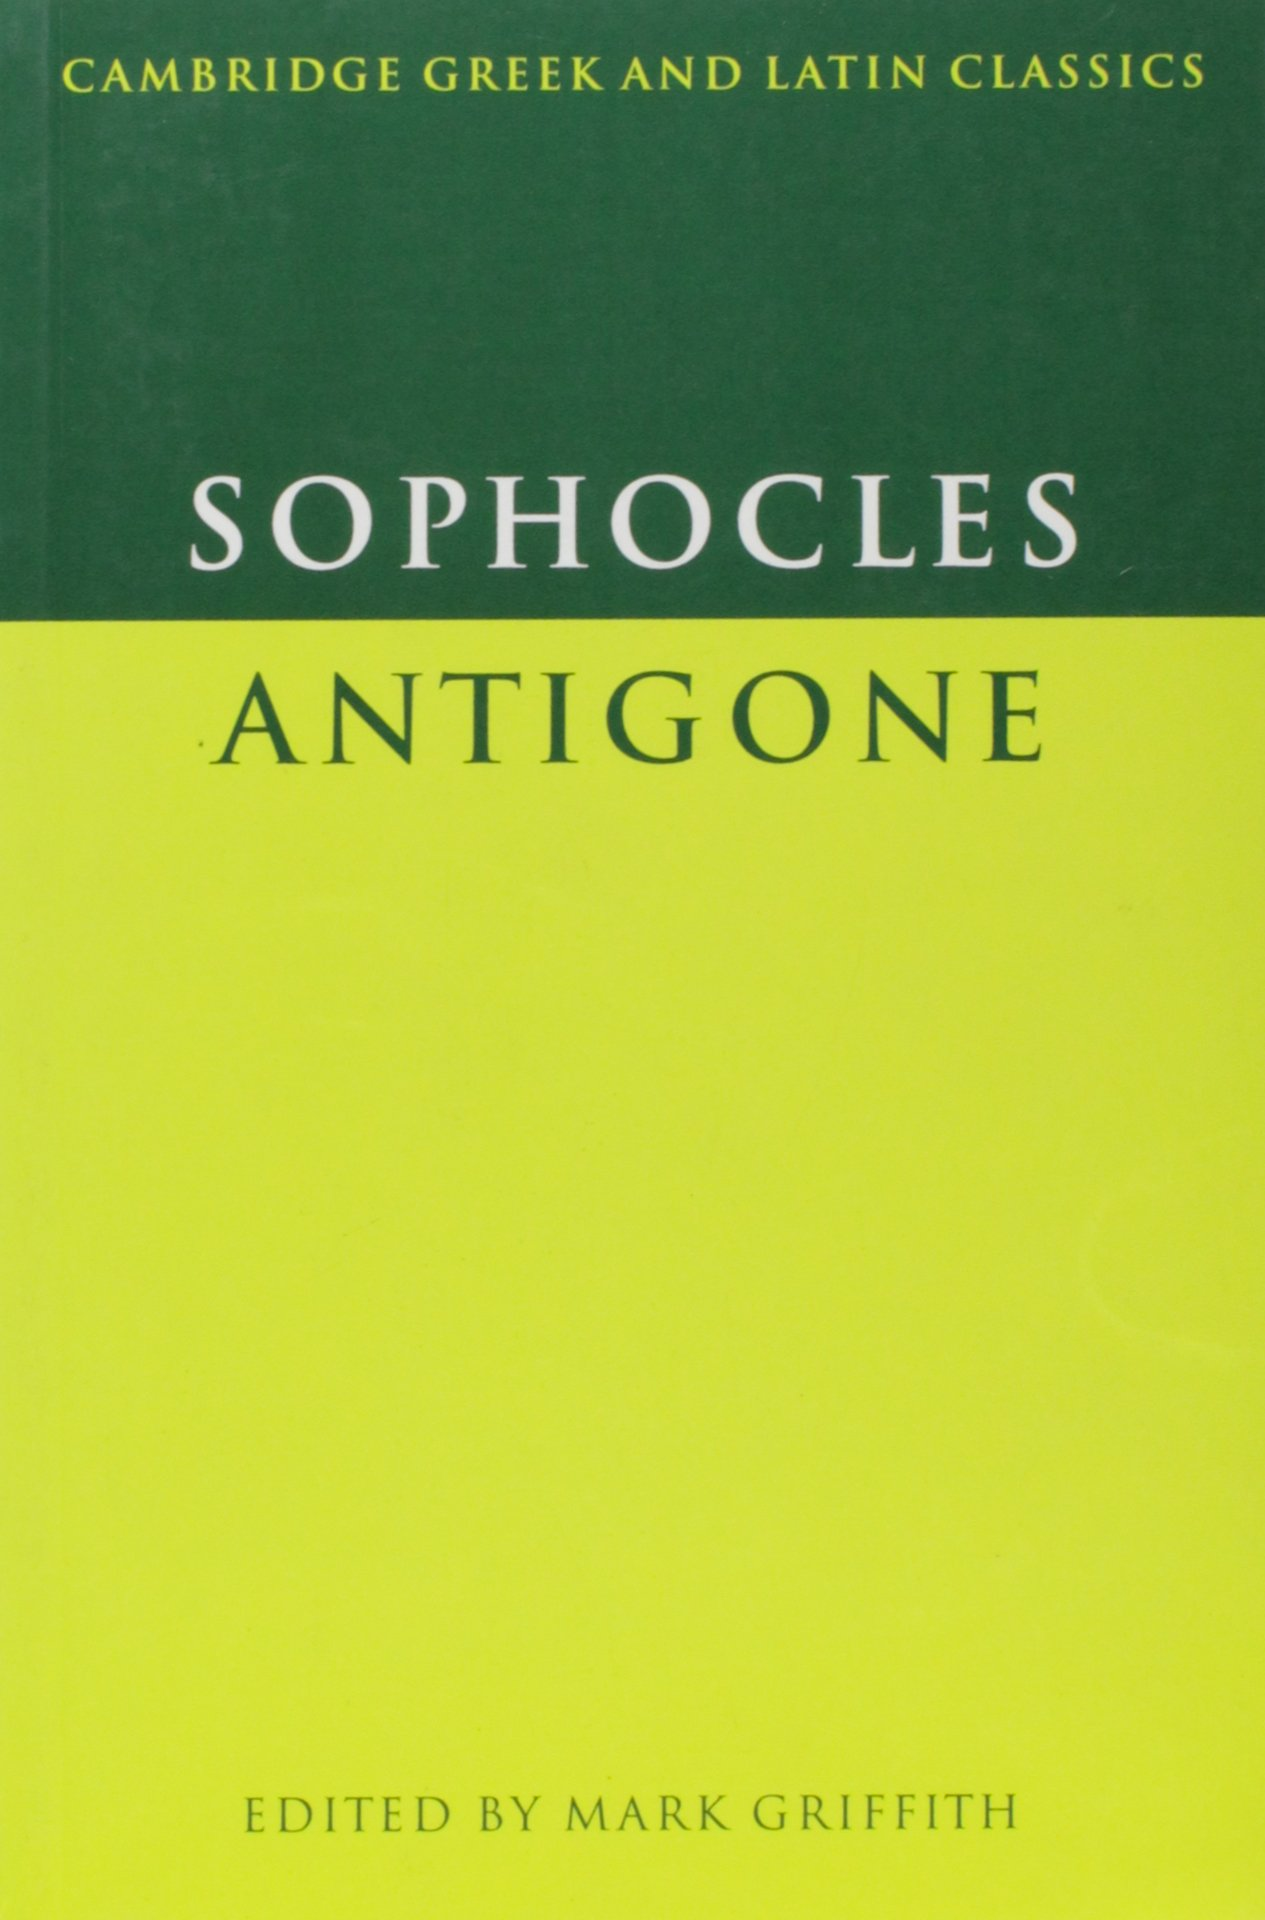 Sophocles  Antigone (Cambridge Greek and Latin Classics)  Amazon.co ... 18a1437a324ac